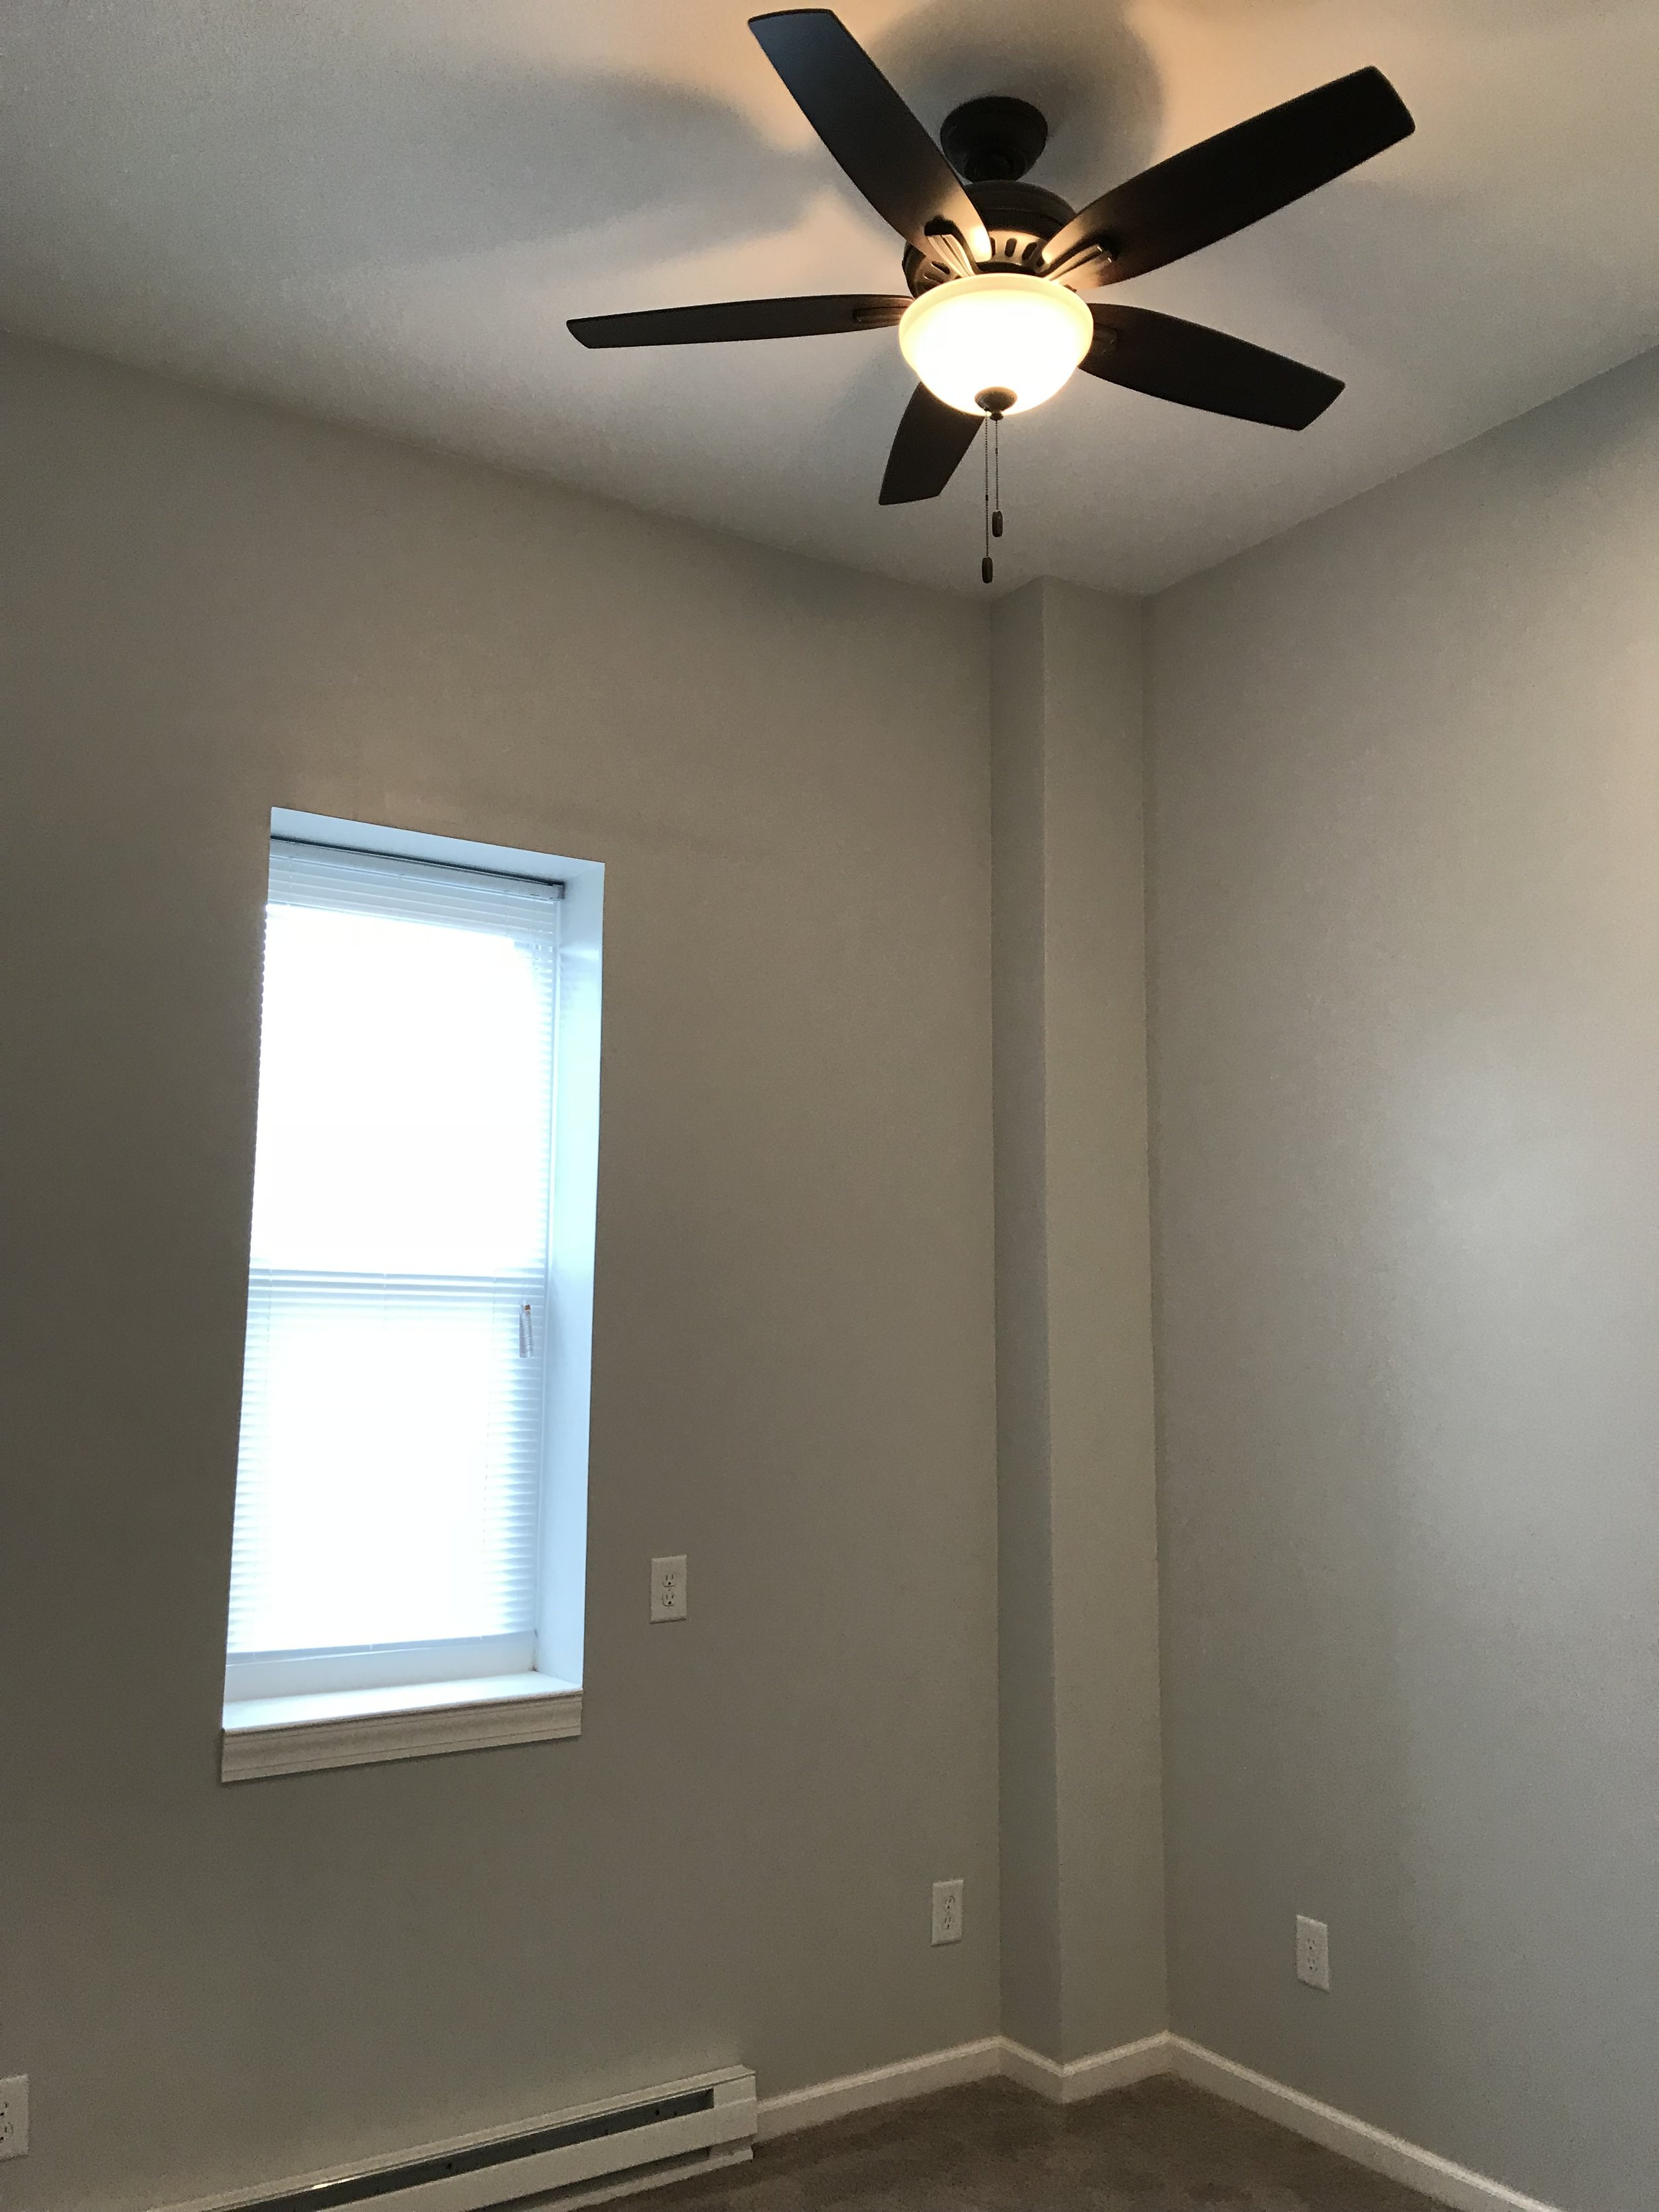 Bedroom Ceiling Fan and Recessed Lights